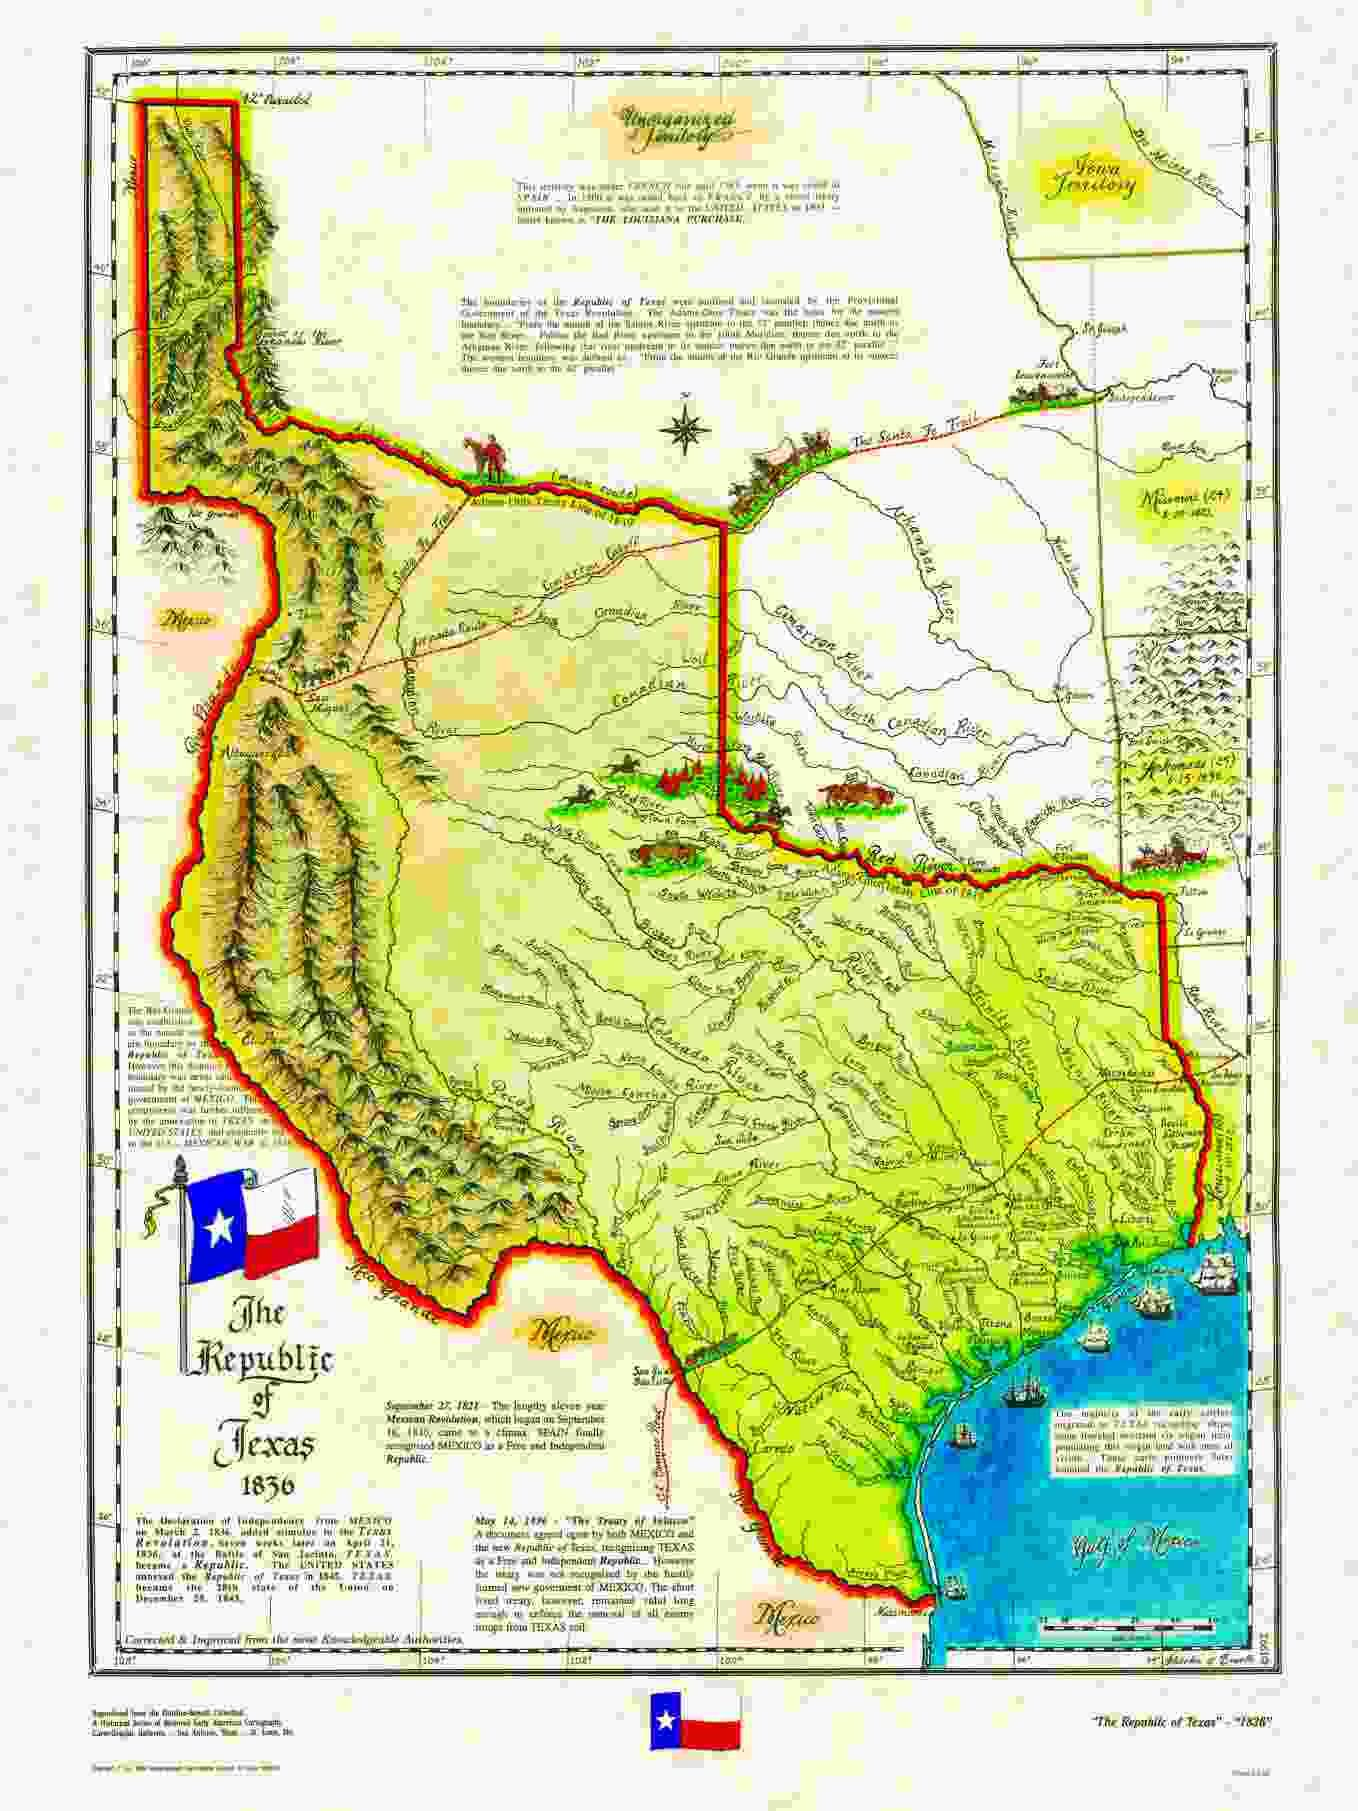 An 1836 map of The Republic of Texas via wwwhistoricalusmaps